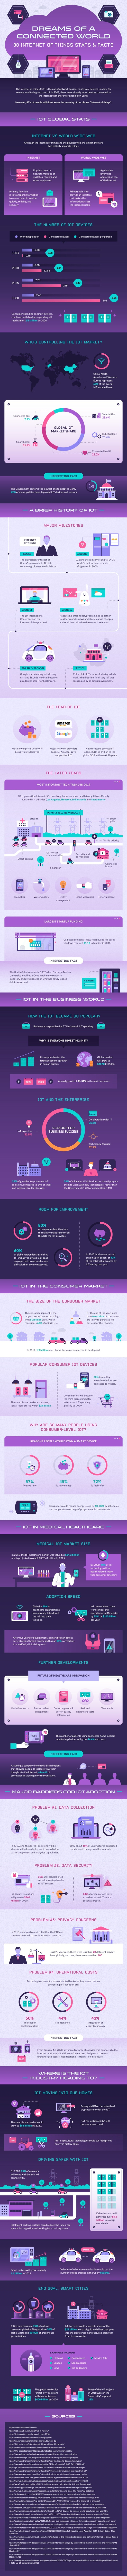 The Four Layers of IoT